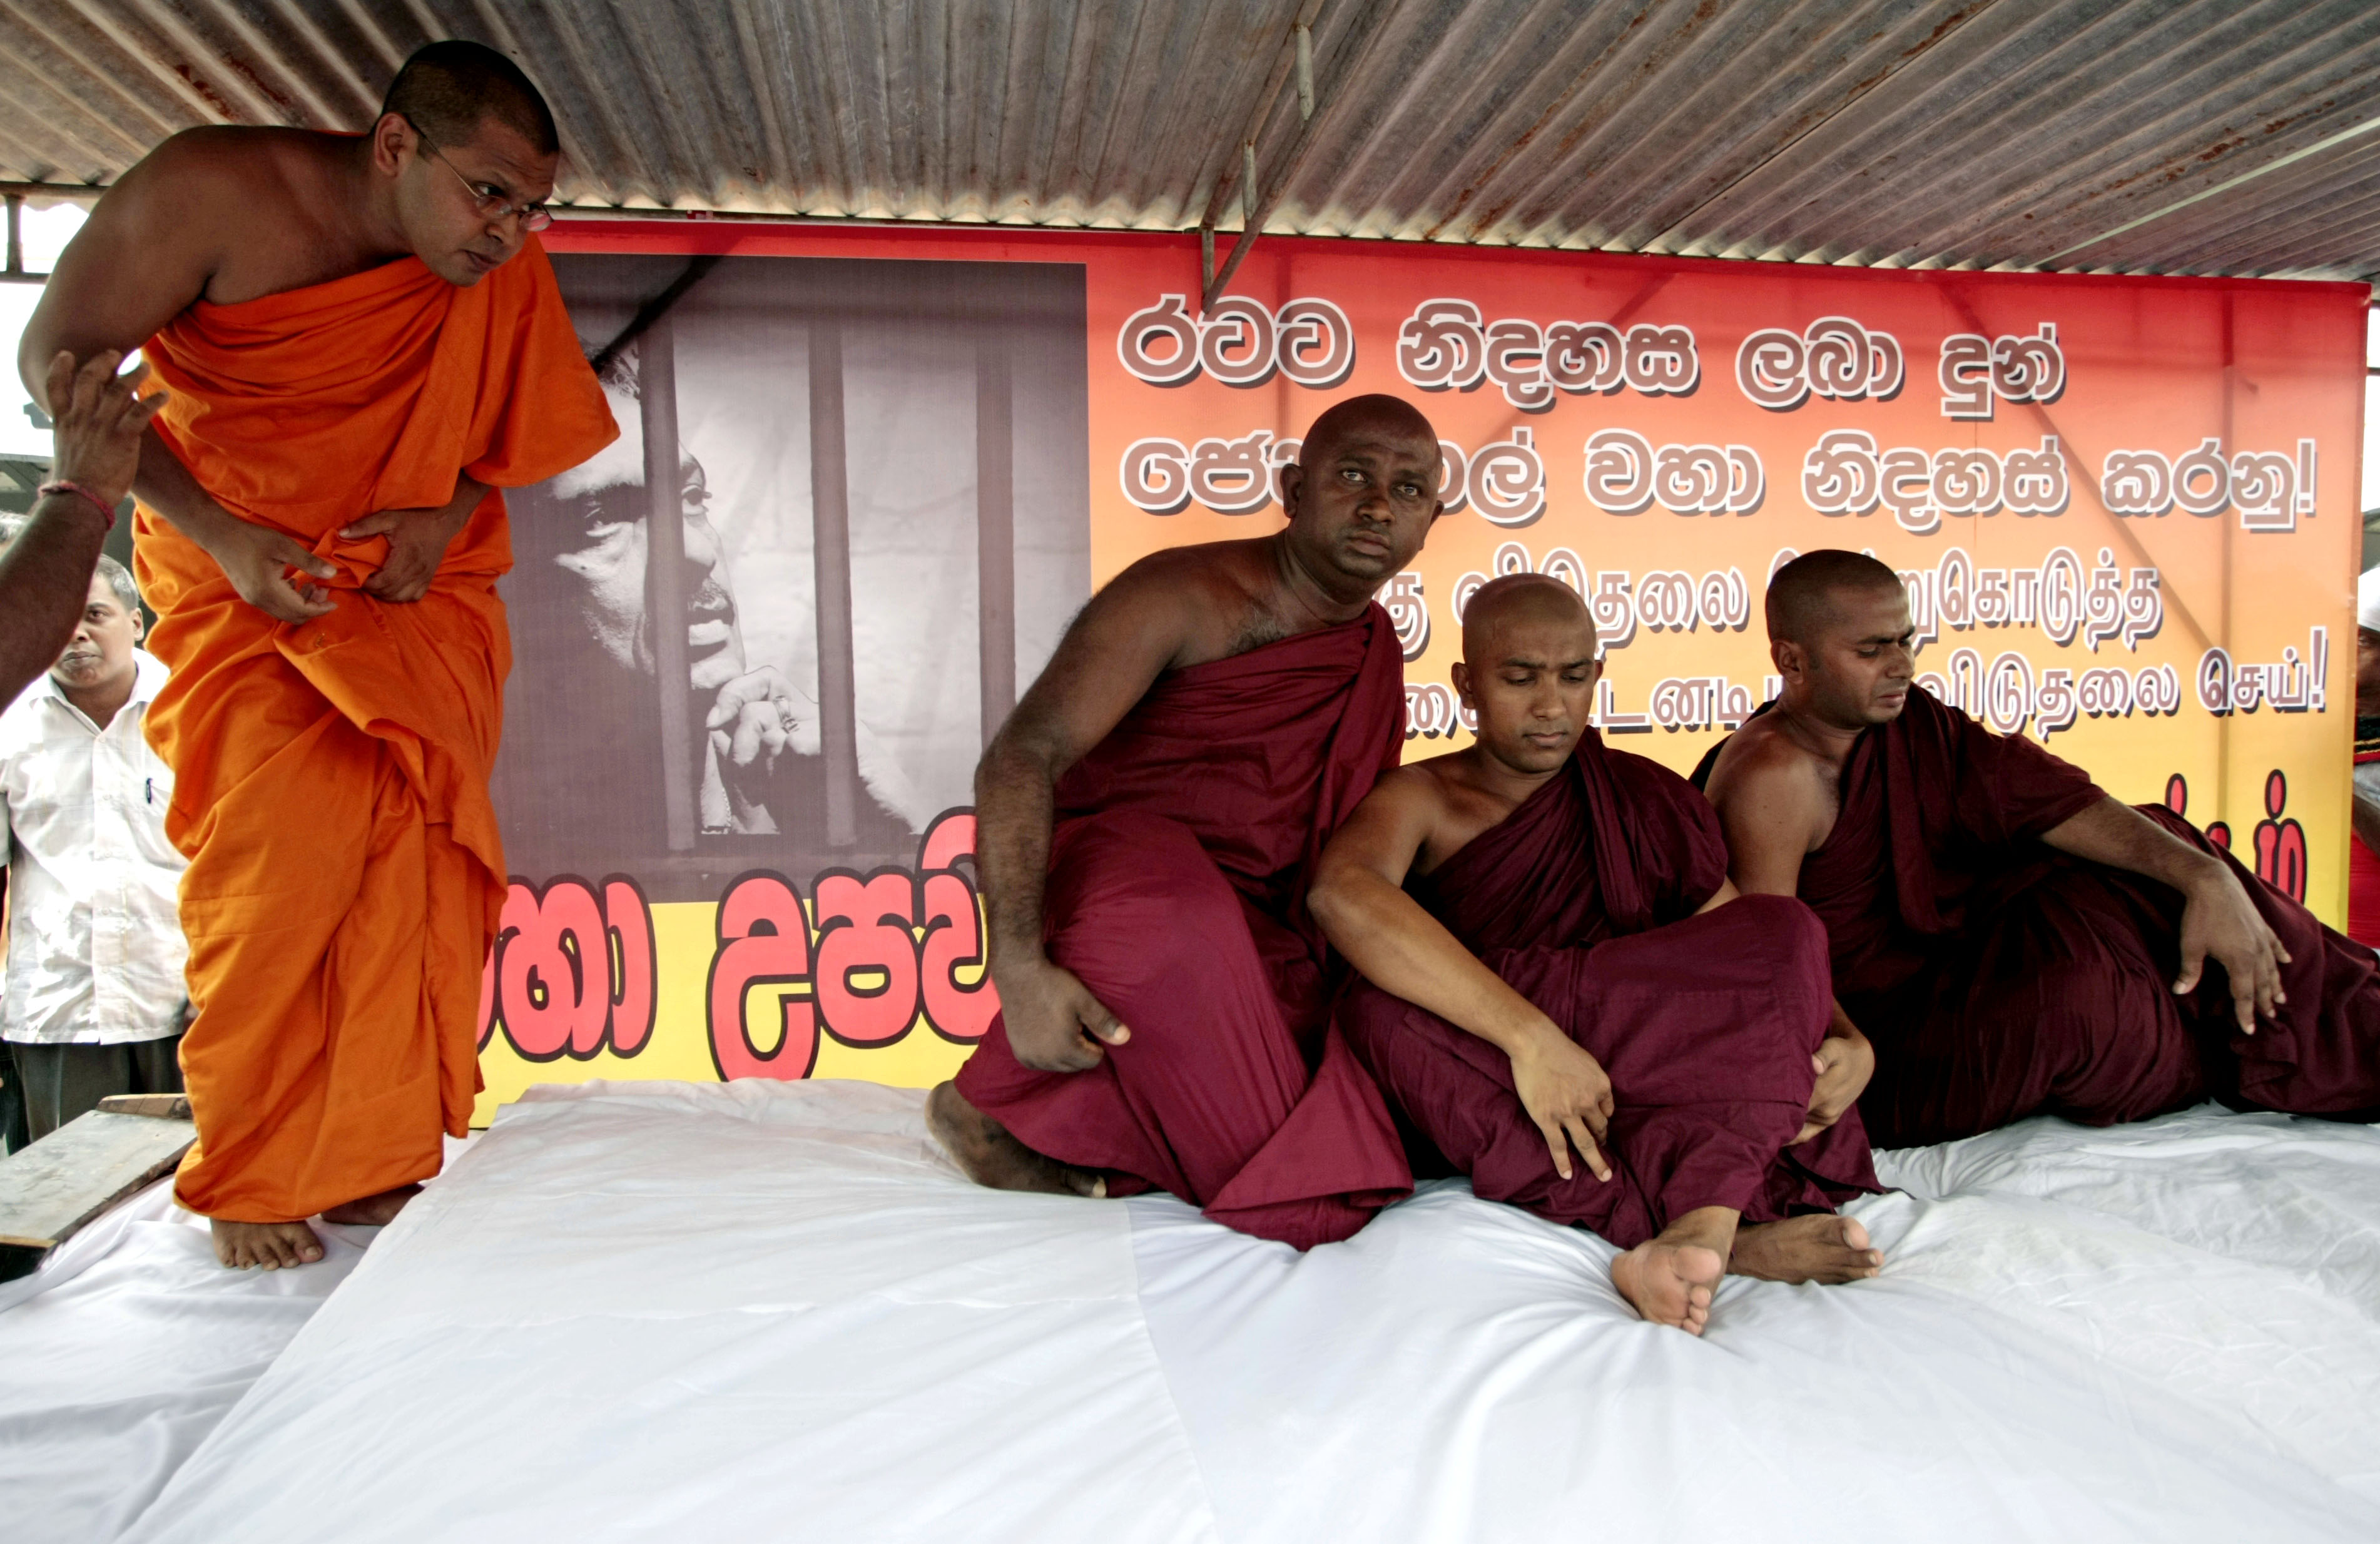 Sri Lankan Buddhist monks, supporters of defeated presidential candidate Sarath Fonseka, participate in a protest in Colombo, Sri Lanka on Saturday.